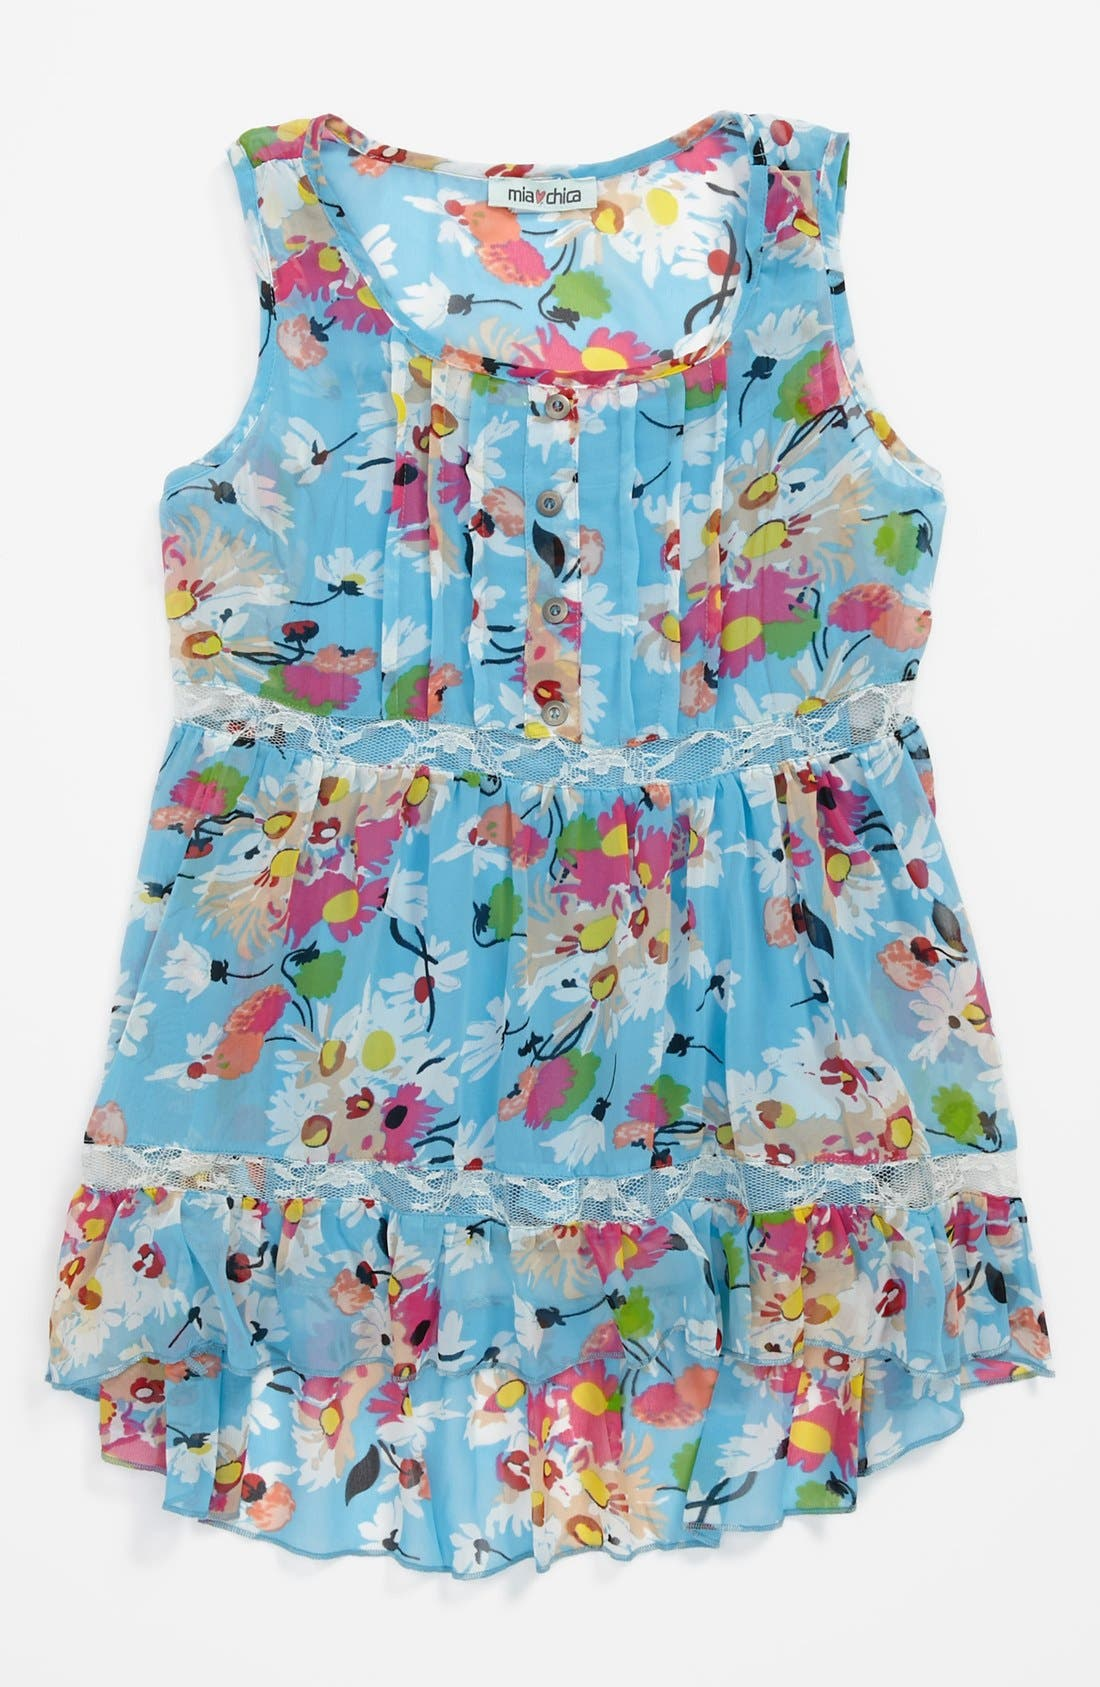 Alternate Image 1 Selected - Mia Chica Sleeveless Woven Top (Big Girls)